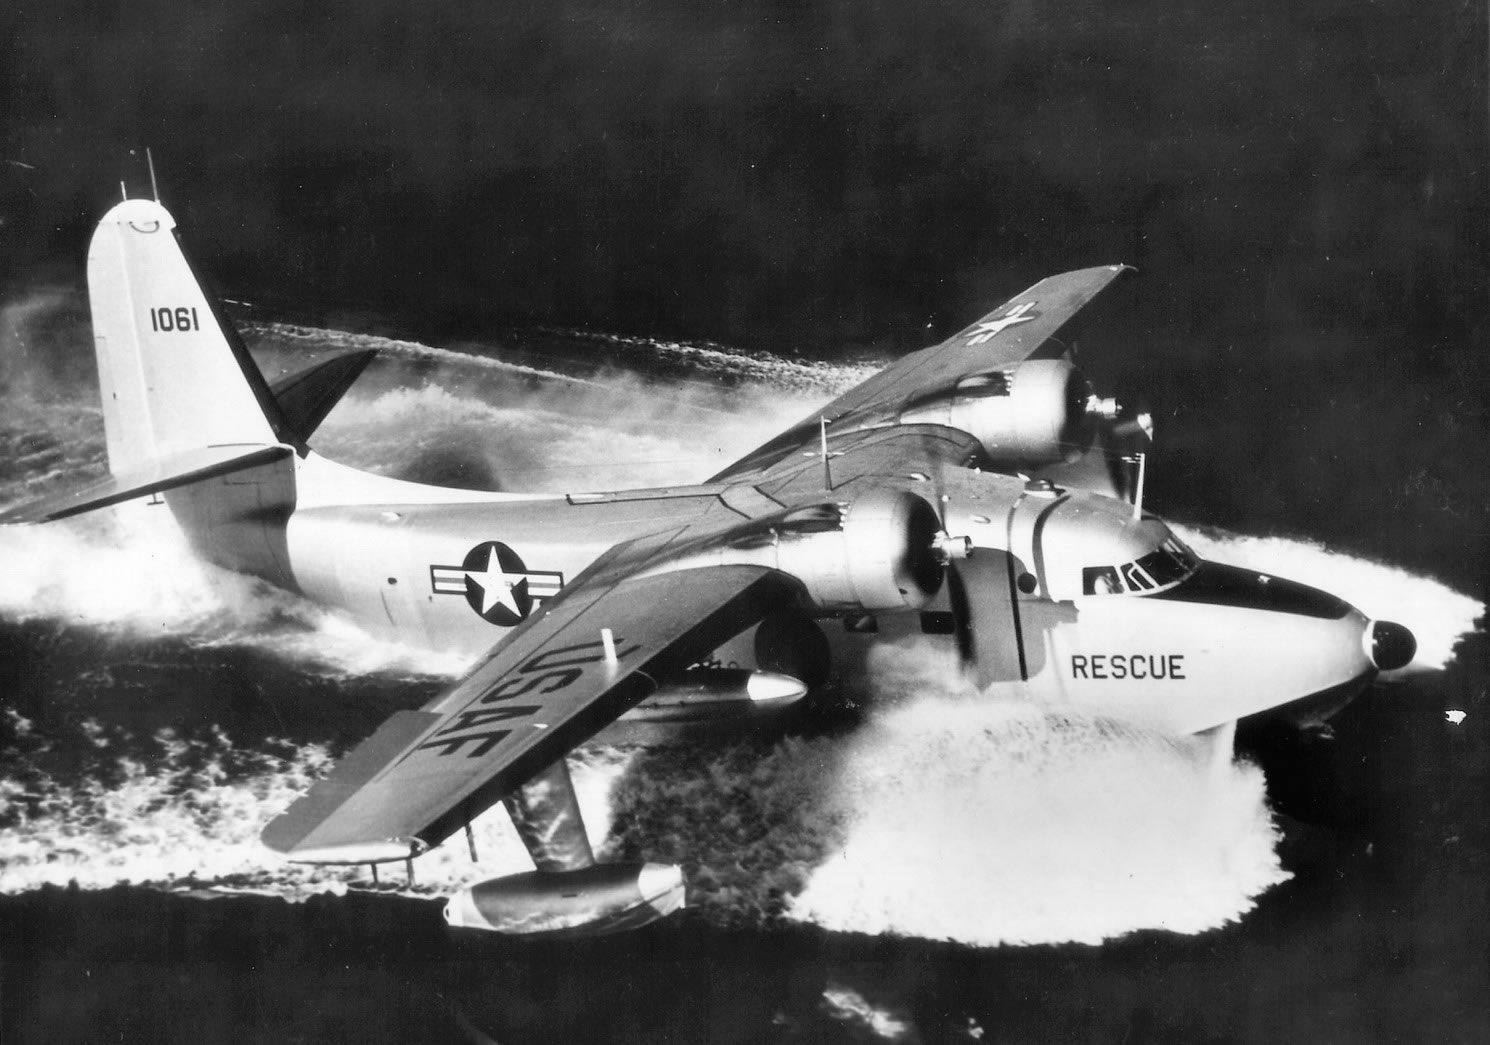 Grumman SA16 Albatross. My dad flew these during the Korean War doing Air Sea Rescue of downed pilots.